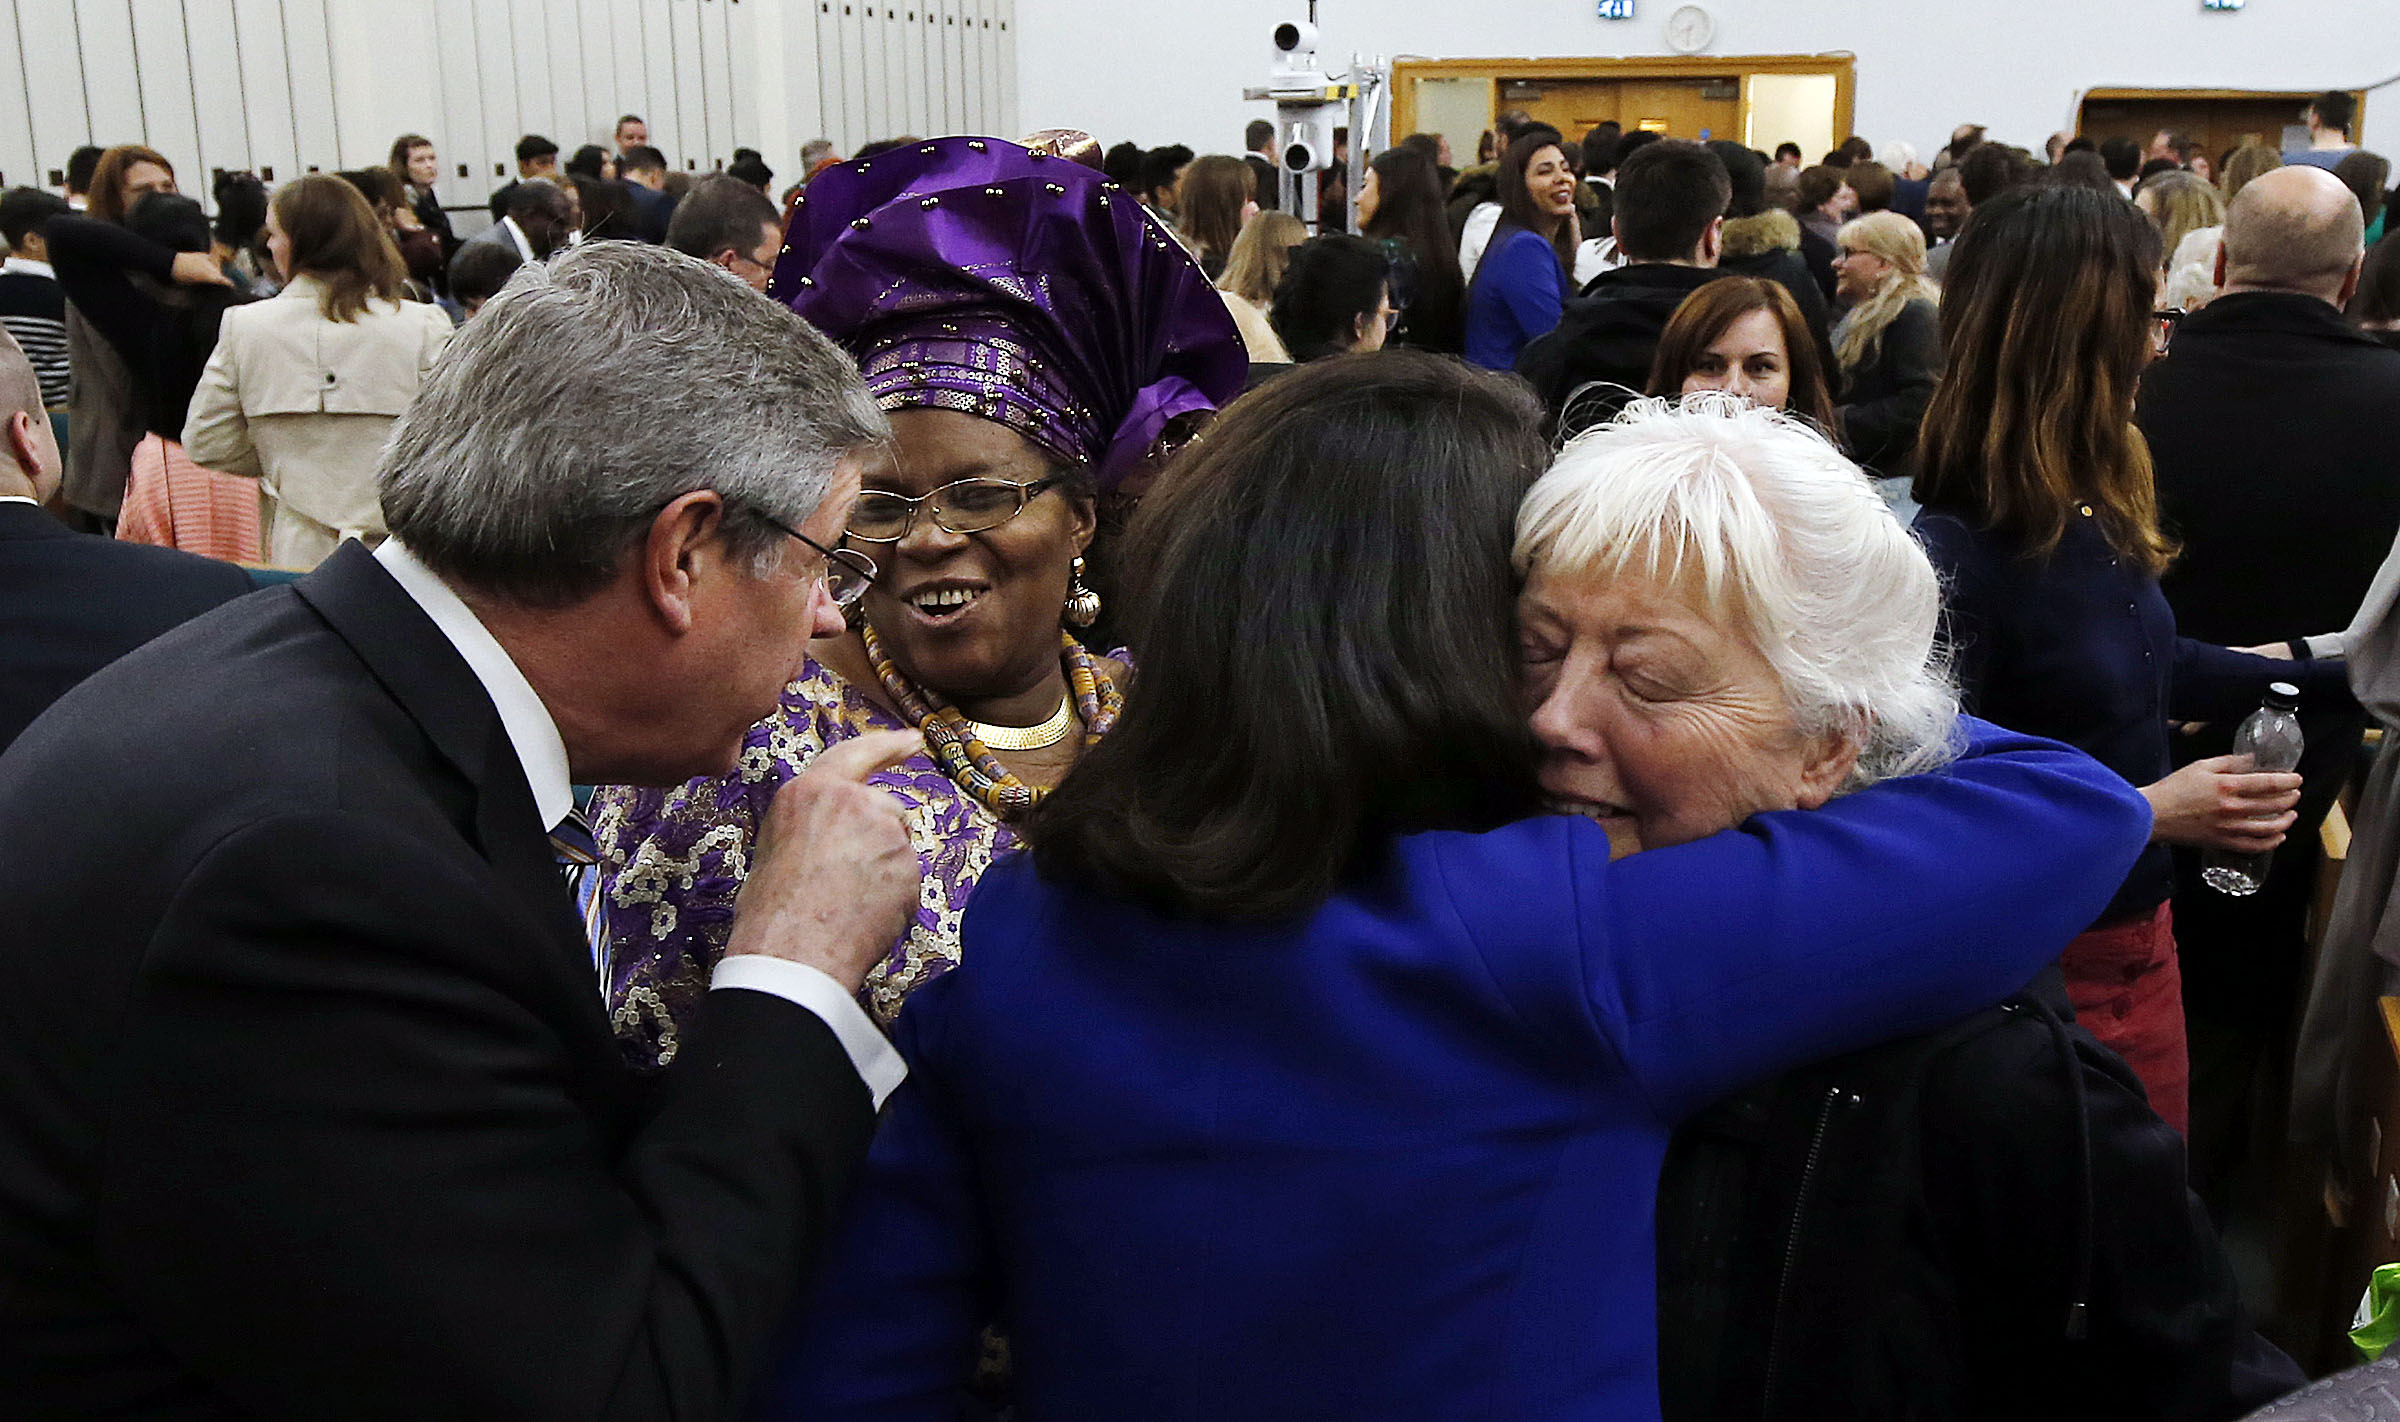 Sheila Bravin, right, hugs Sister Jean Stevens following a meeting at the Hyde Park in London on Thursday, April 12, 2018. At left, President Mark Stevens smiles with Caroline Yorke.